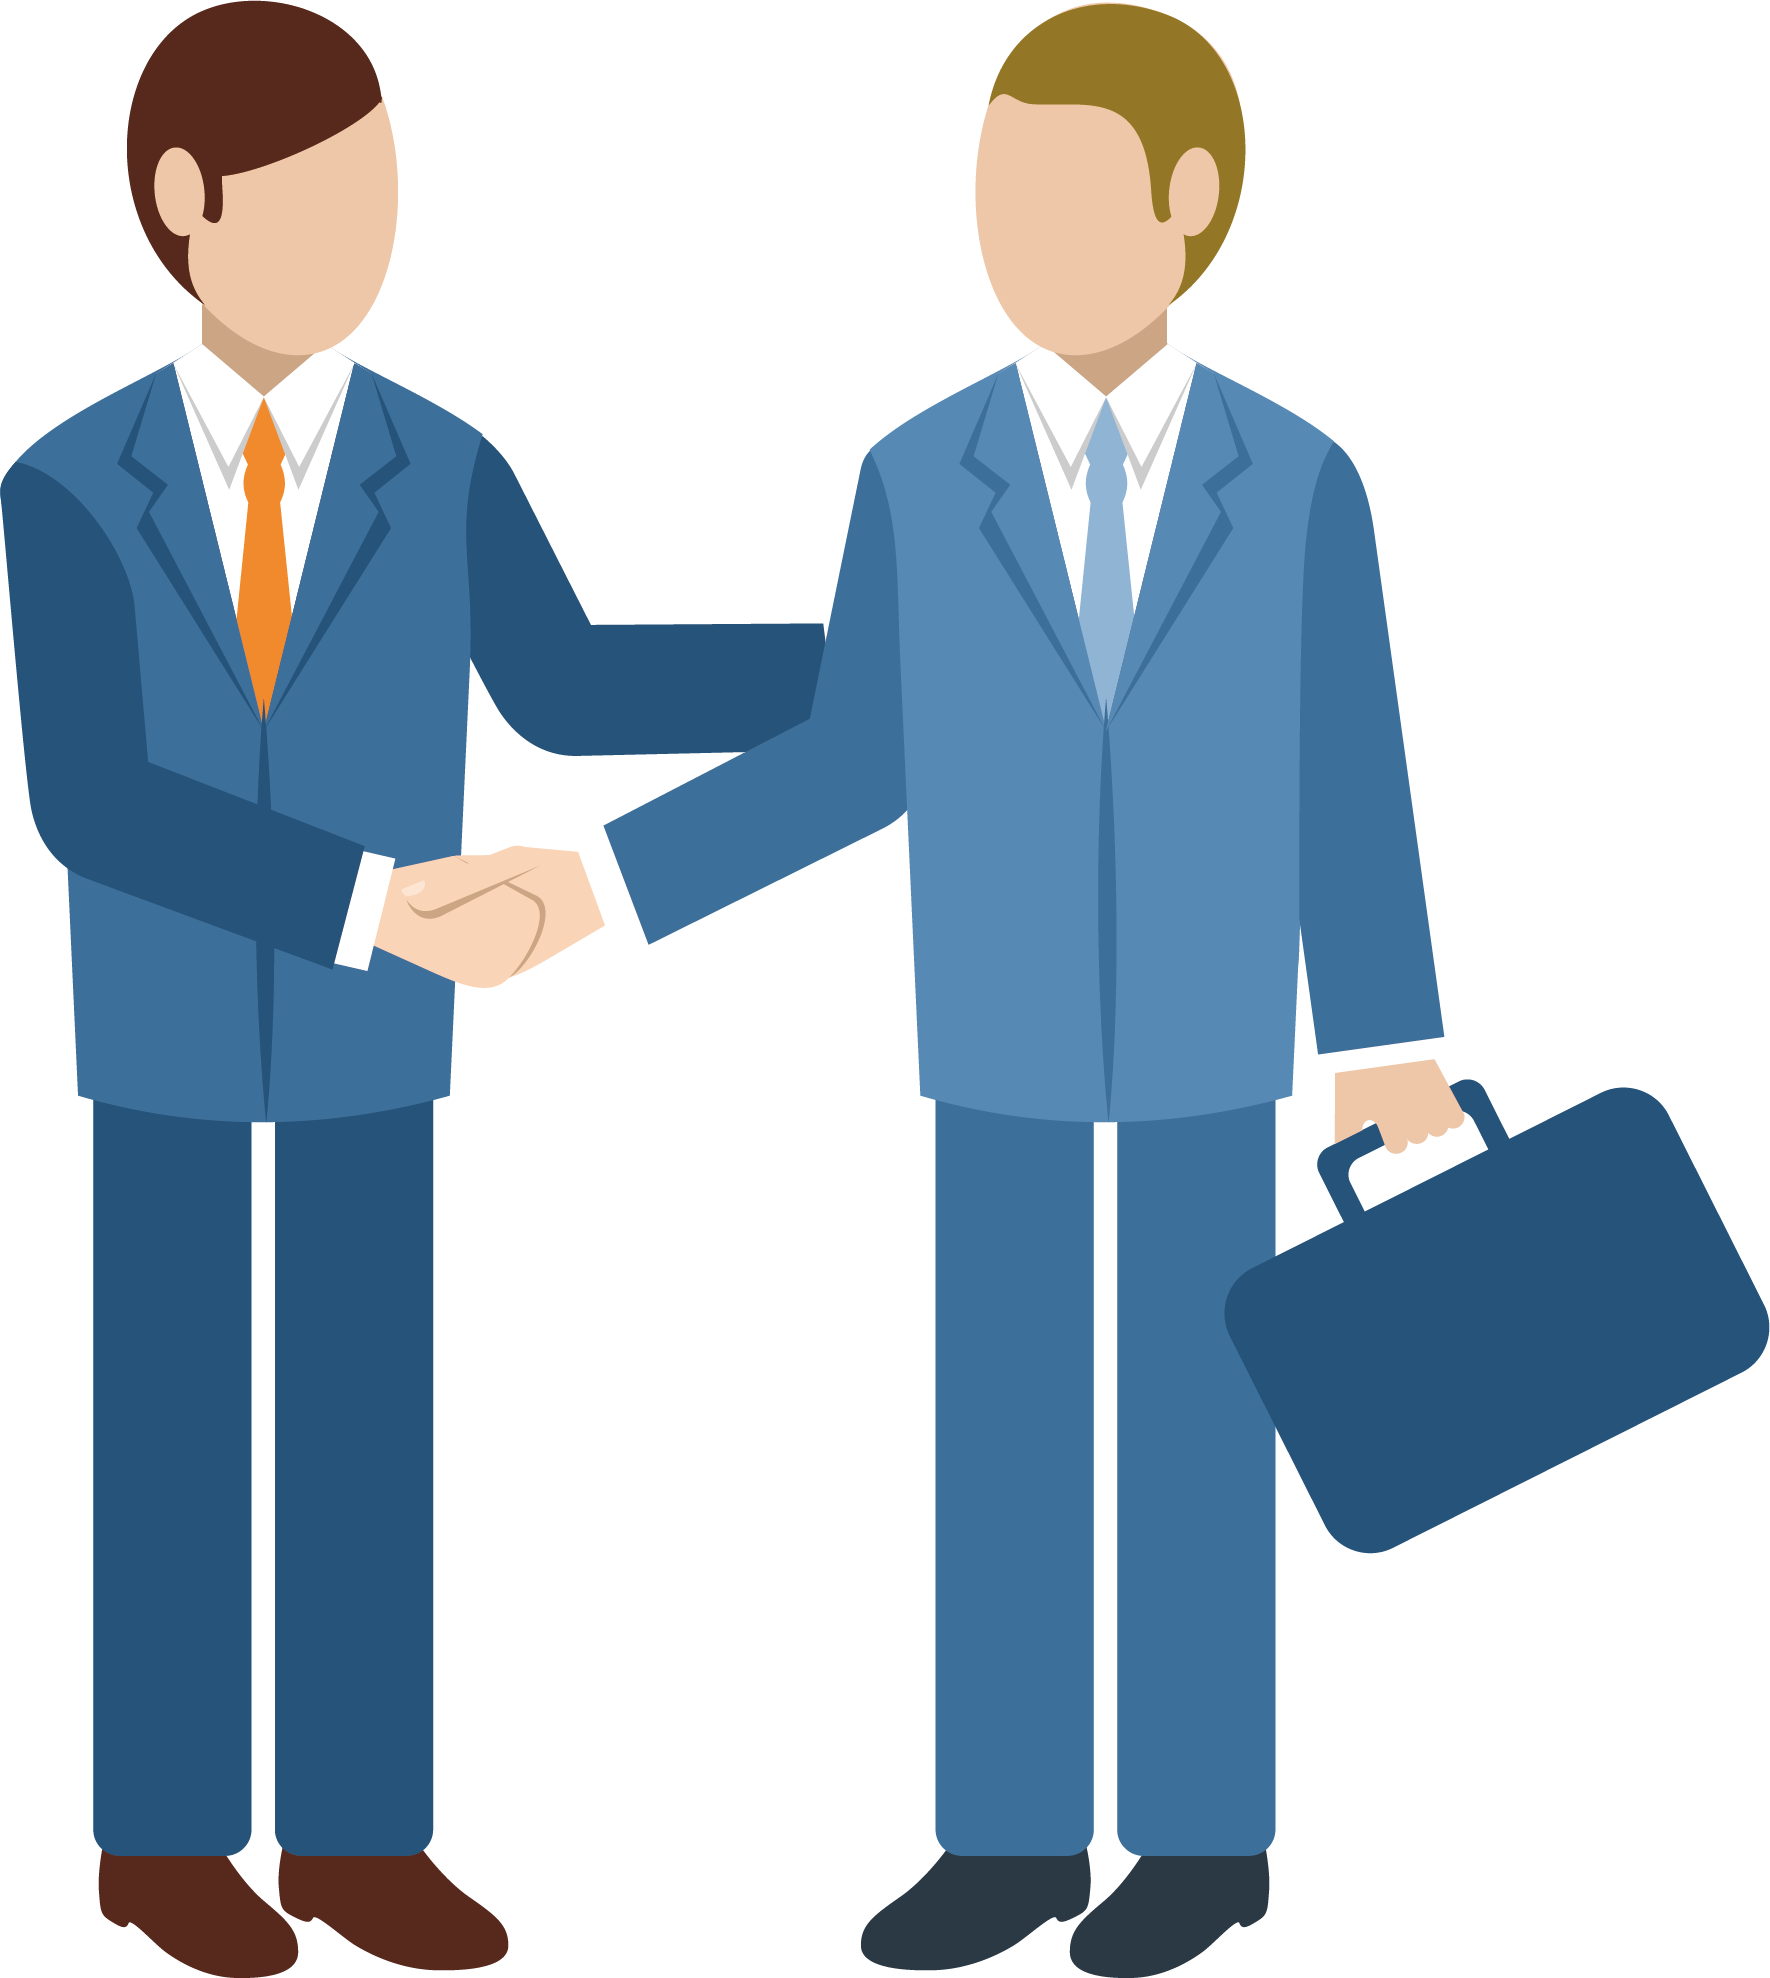 svg freeuse stock . Professional clipart business relationship